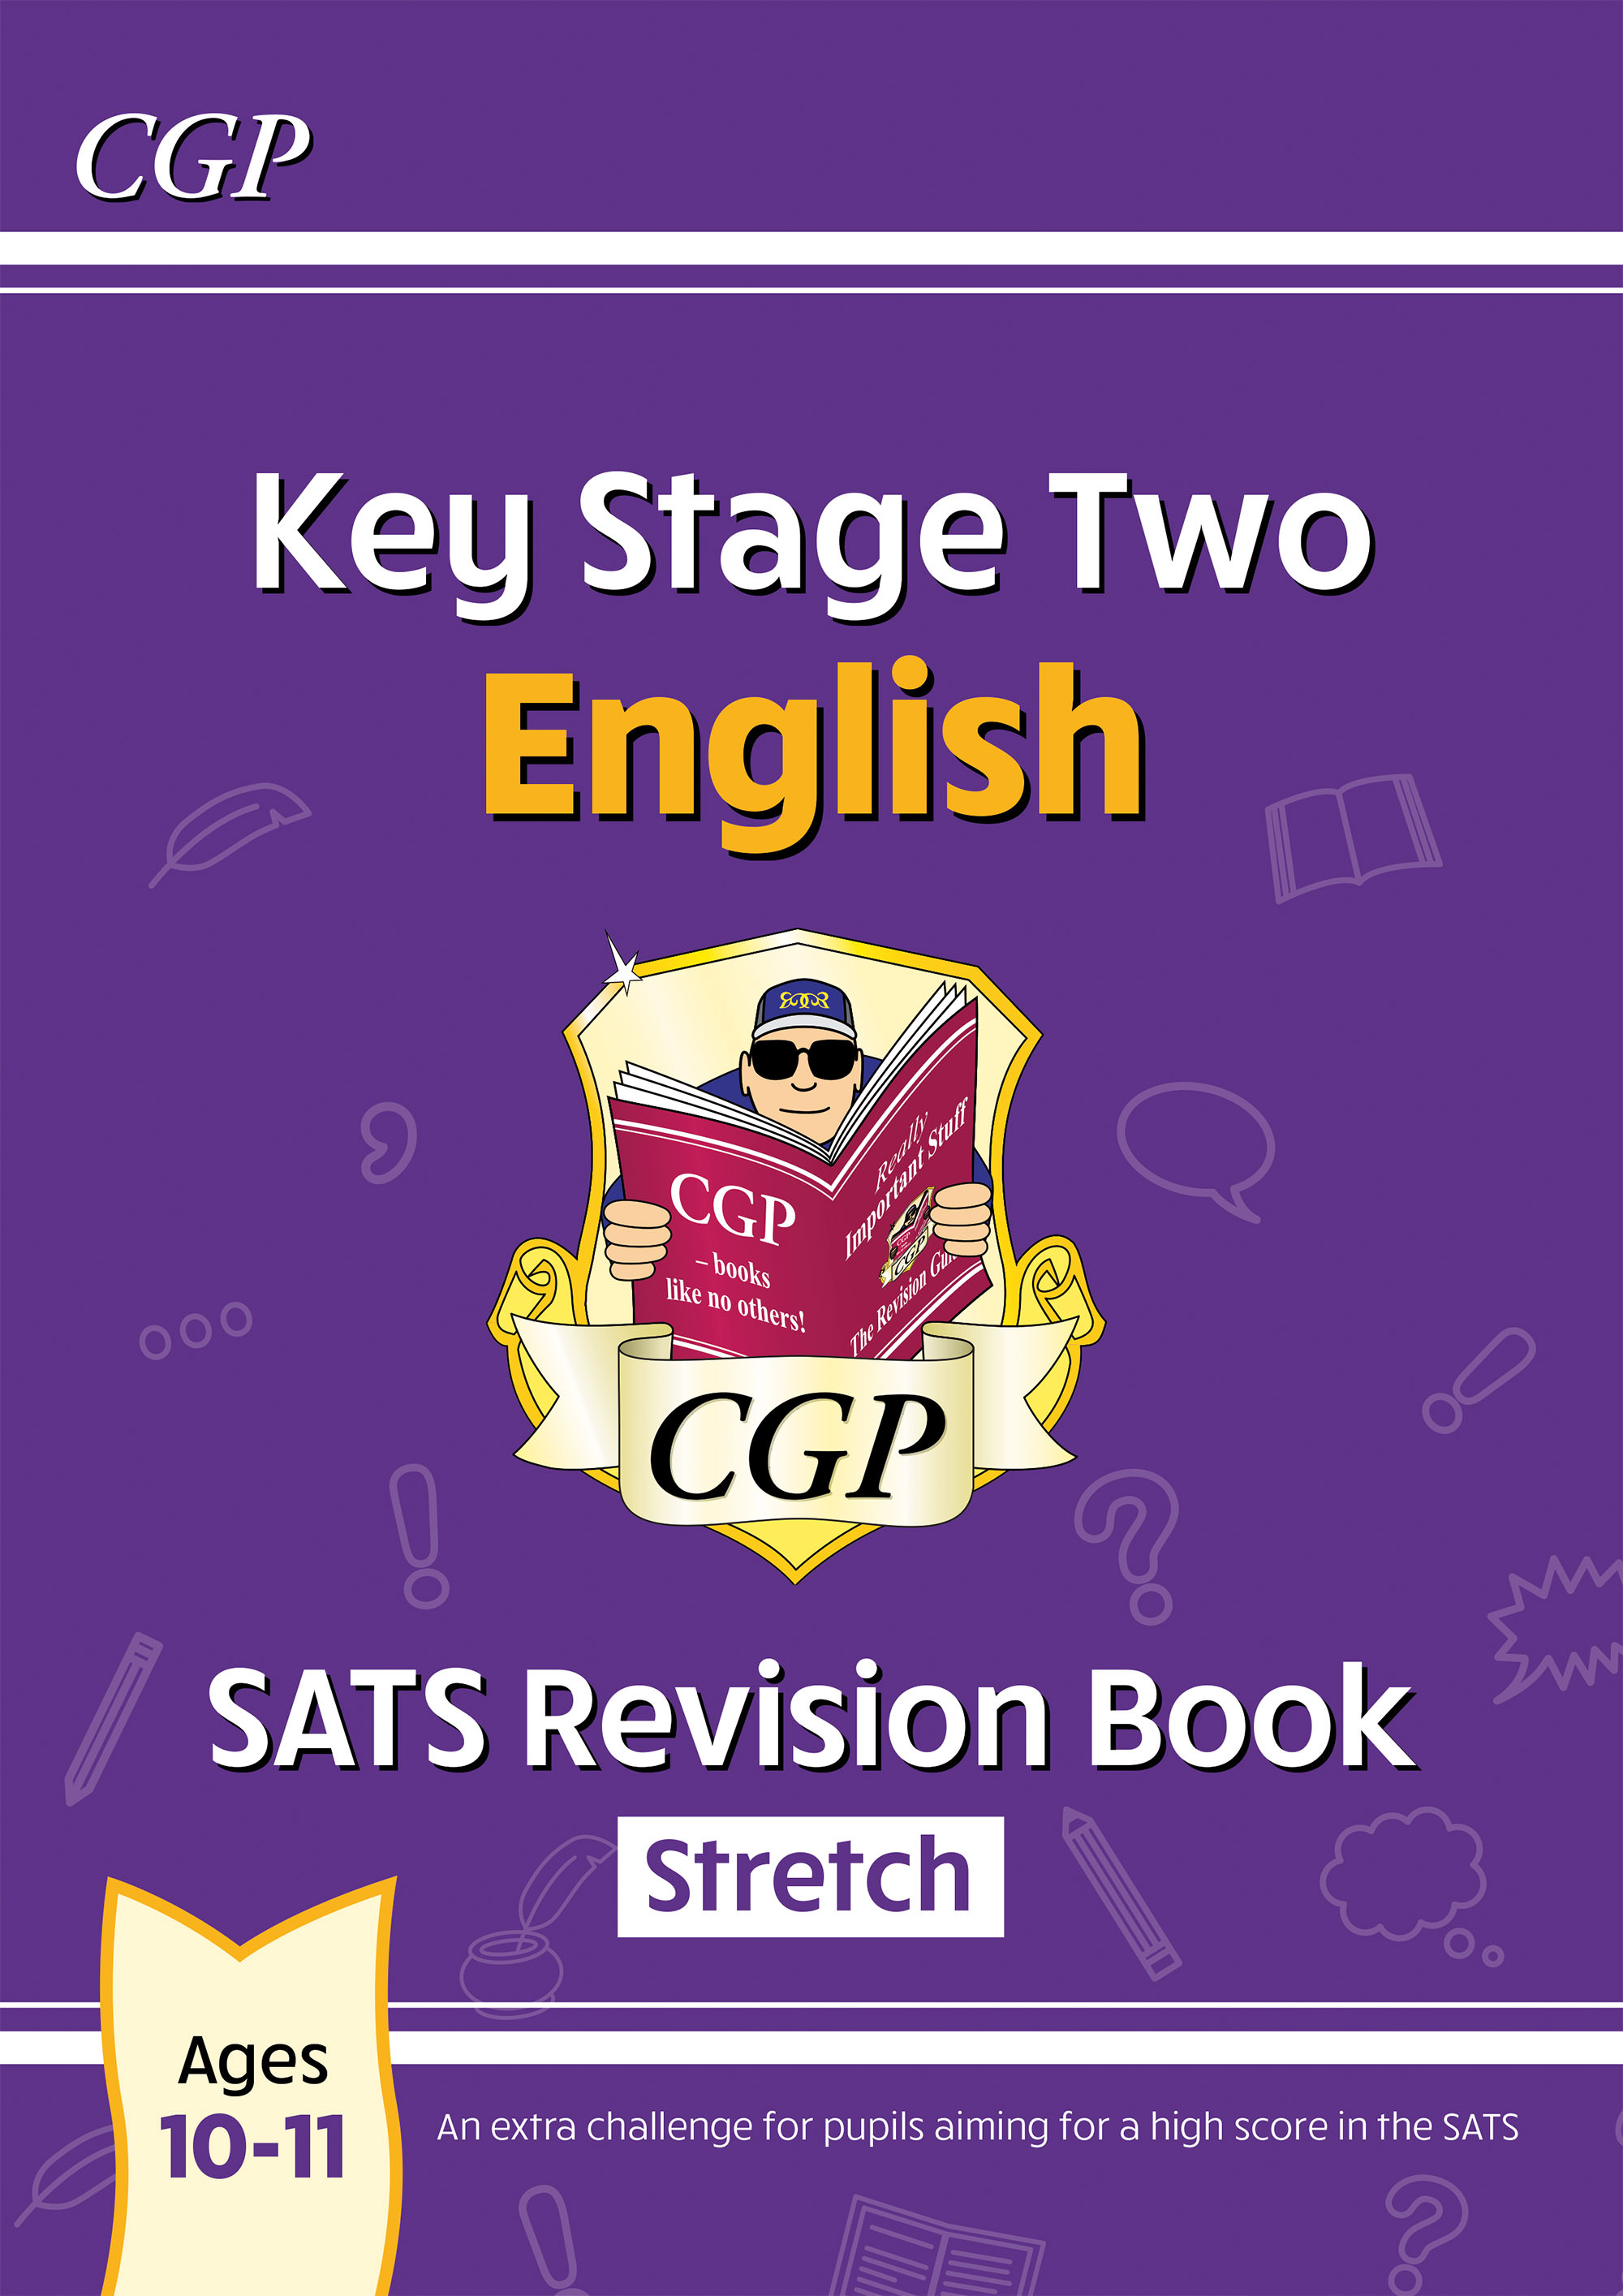 E6HR23DK - New KS2 English SATS Revision Book: Stretch - Ages 10-11 (for the 2021 tests)